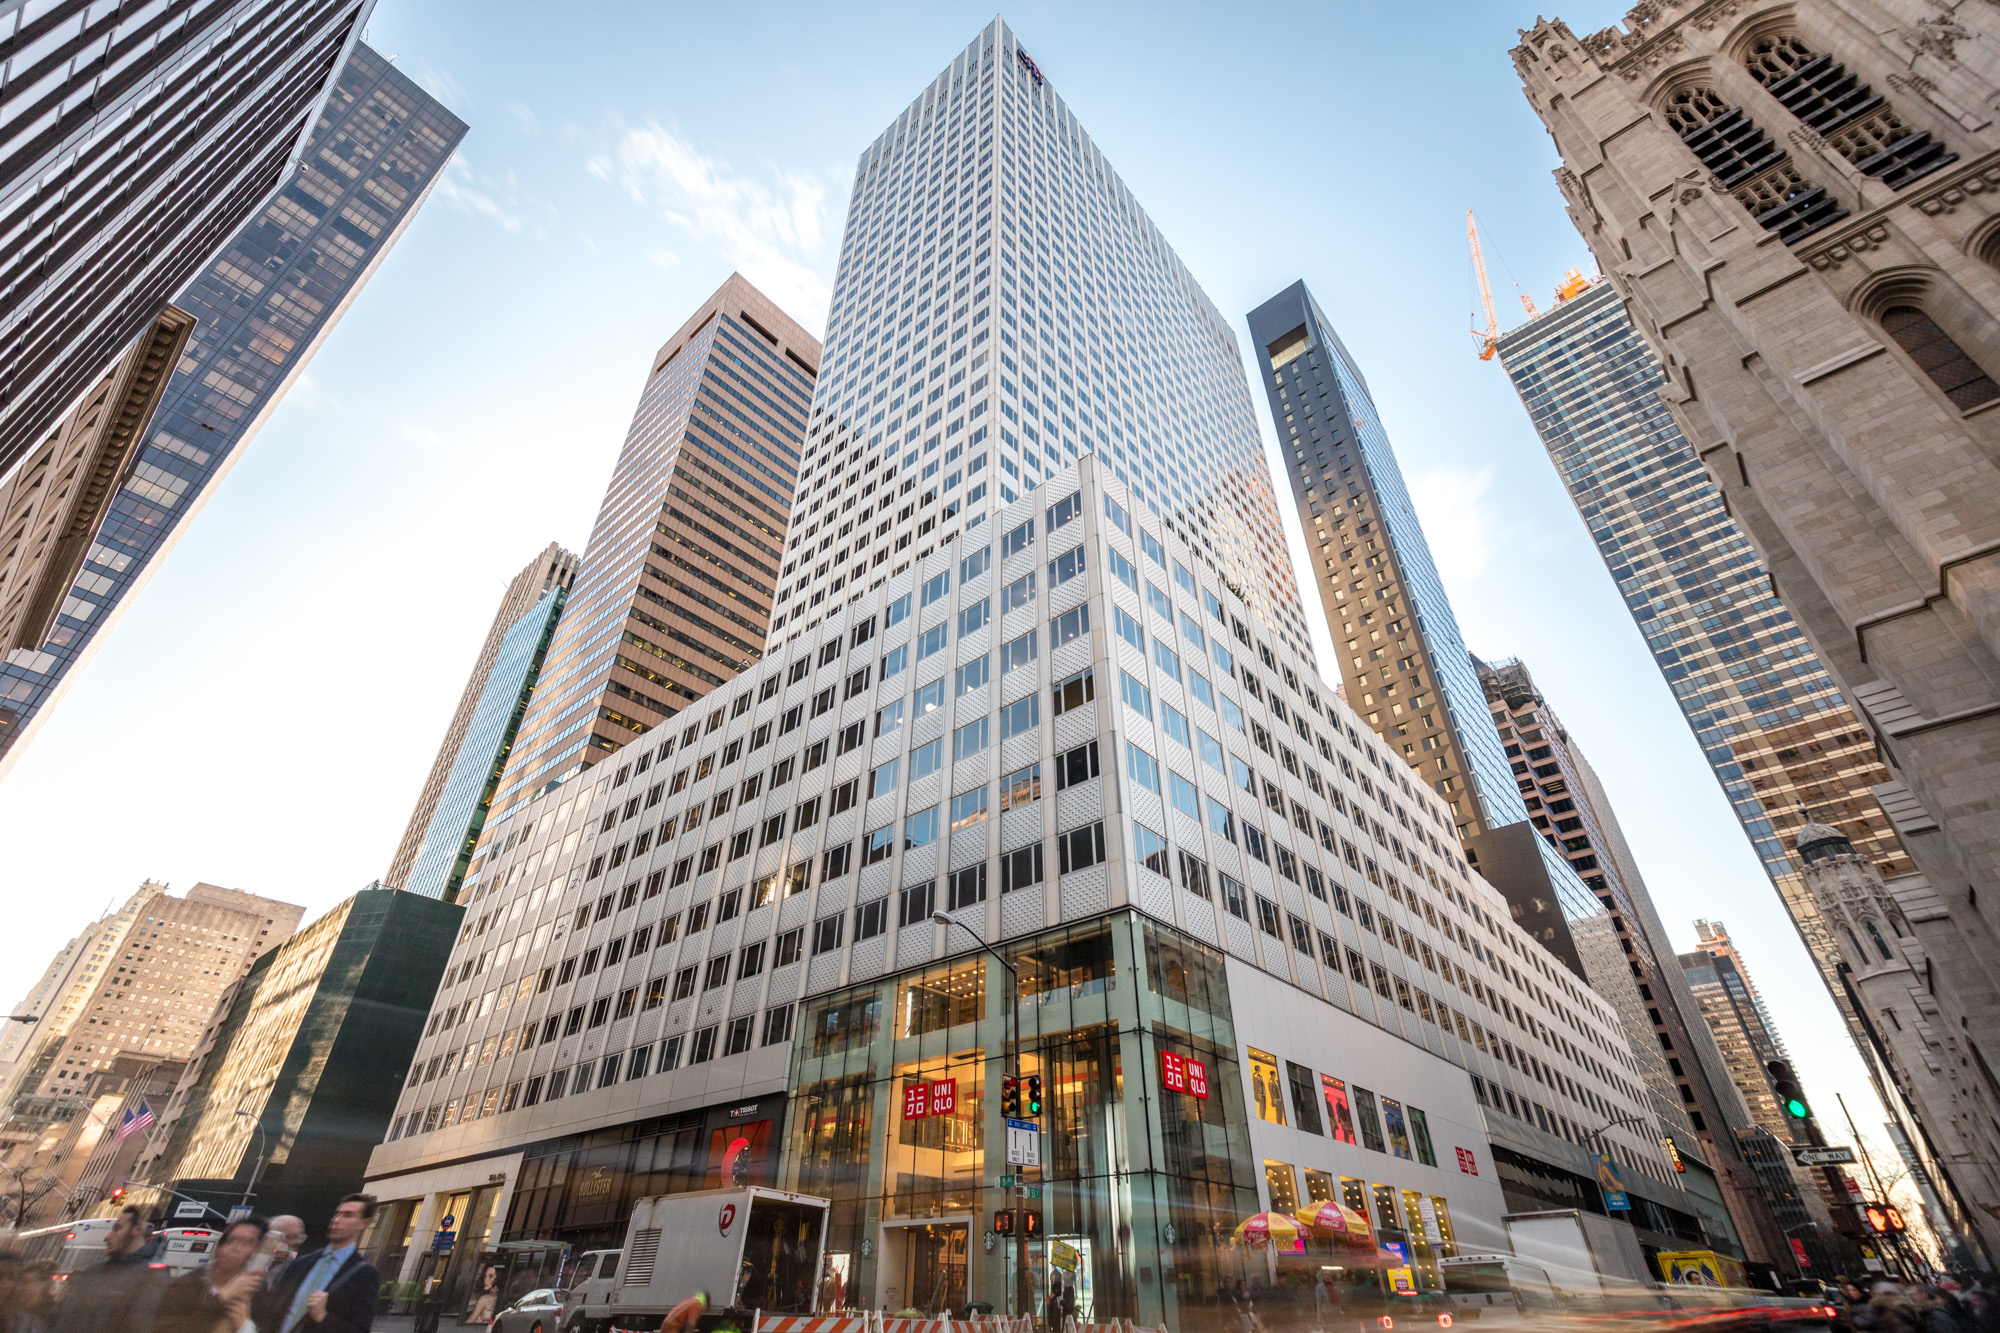 New york homes neighborhoods architecture and real estate curbed ny kushner companiess 666 fifth avenue troubles may be nearing an end thecheapjerseys Gallery